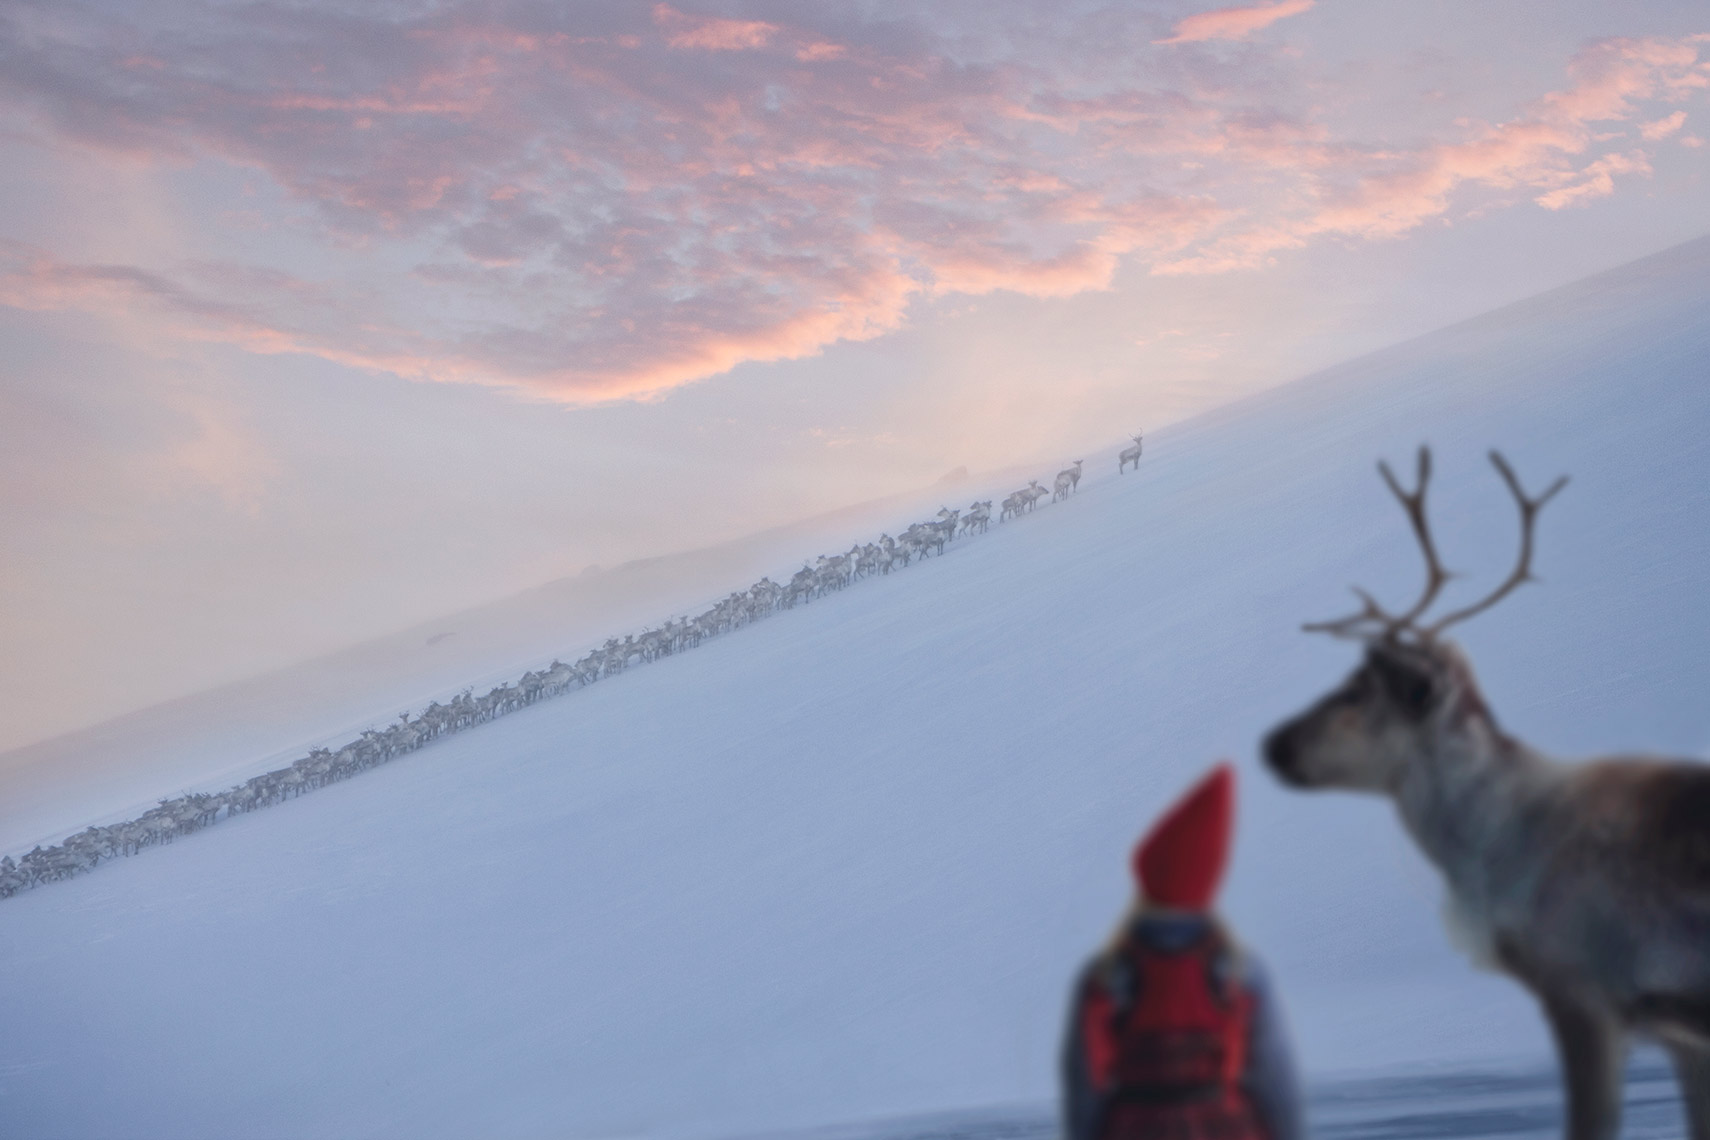 WATCHING-THE-REINDEER-HERD_THE-REINDEER-WISH